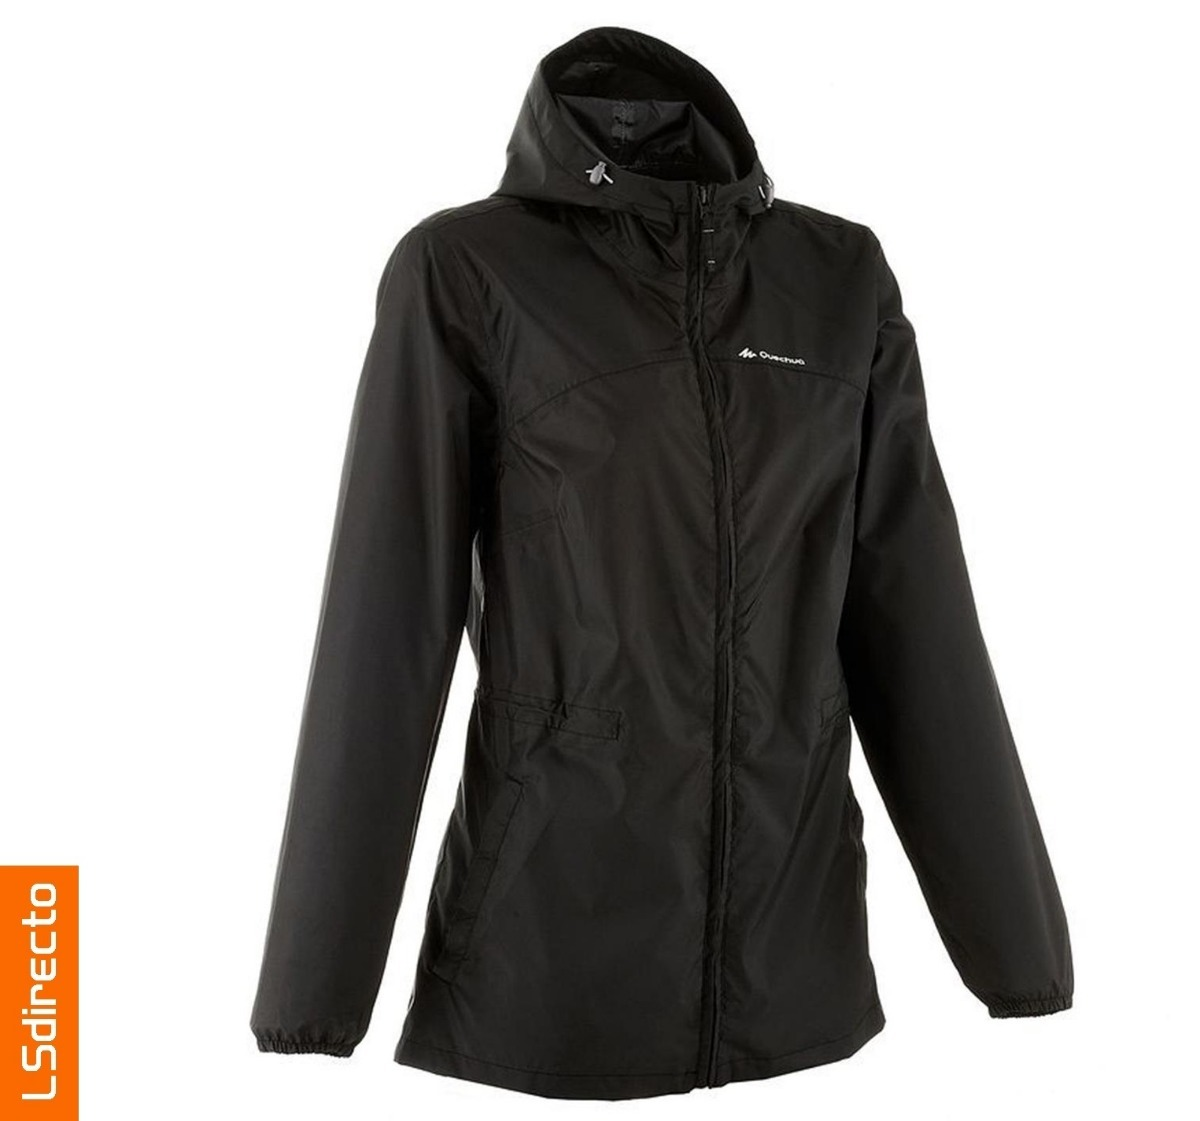 Chaqueta impermeable quechua mujer